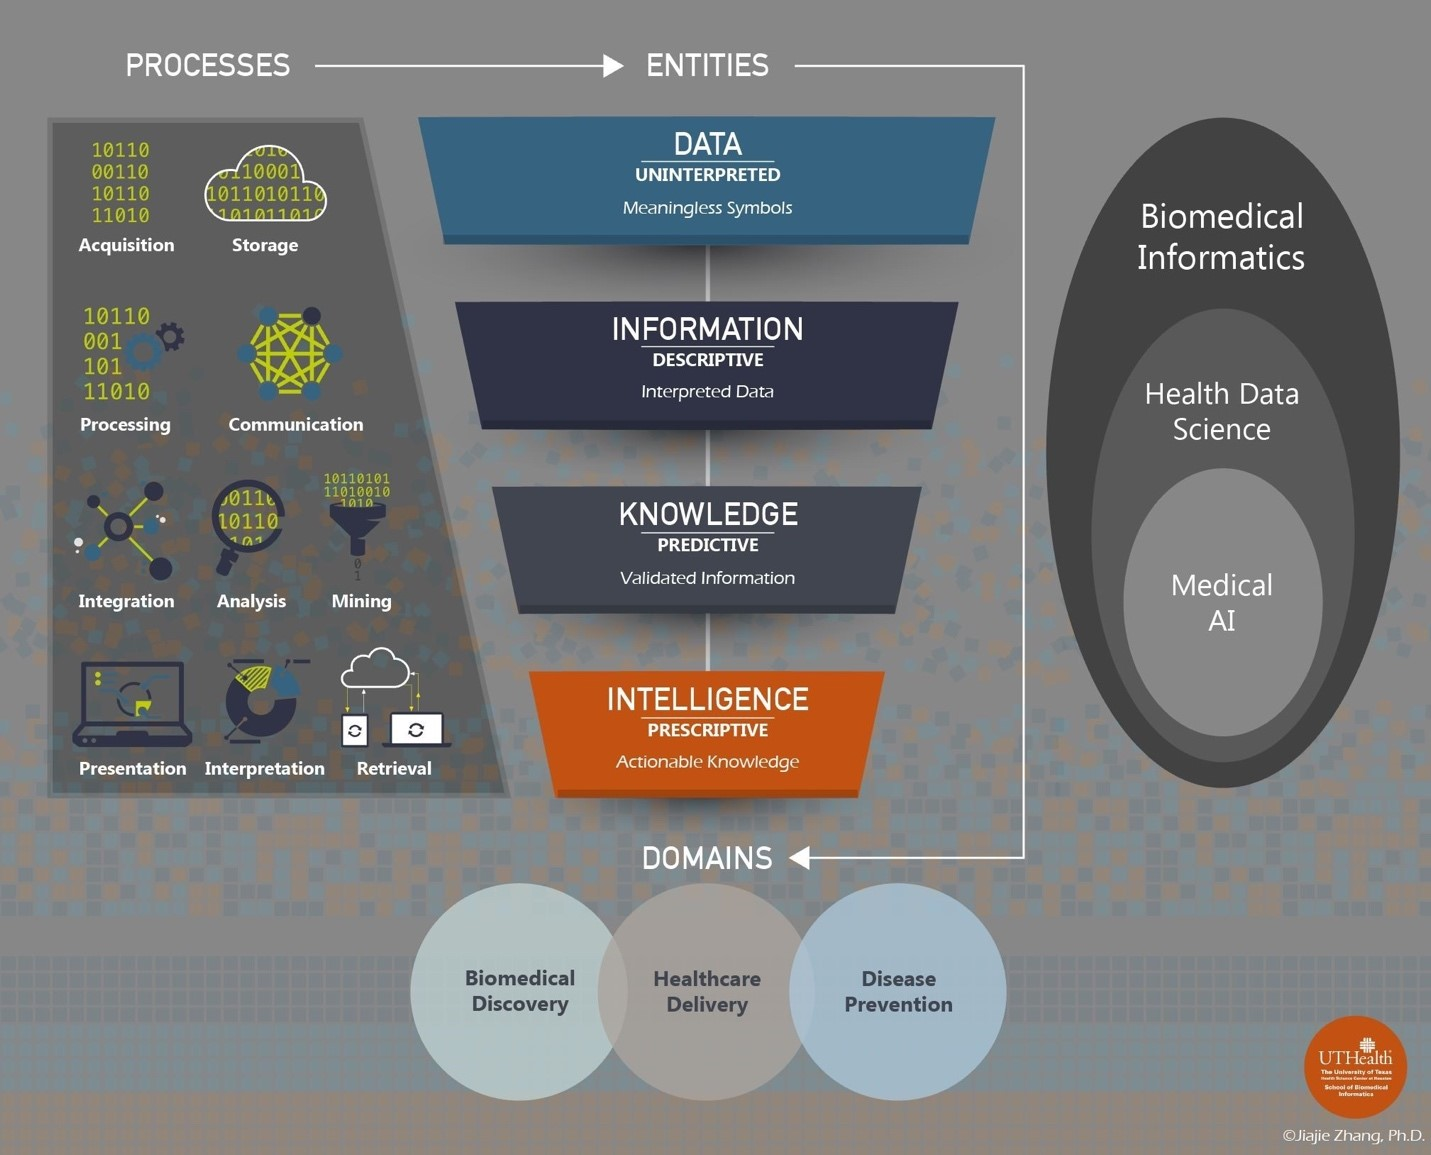 Figure depicting the relationship between biomedical informatics, health data science, and medical AI